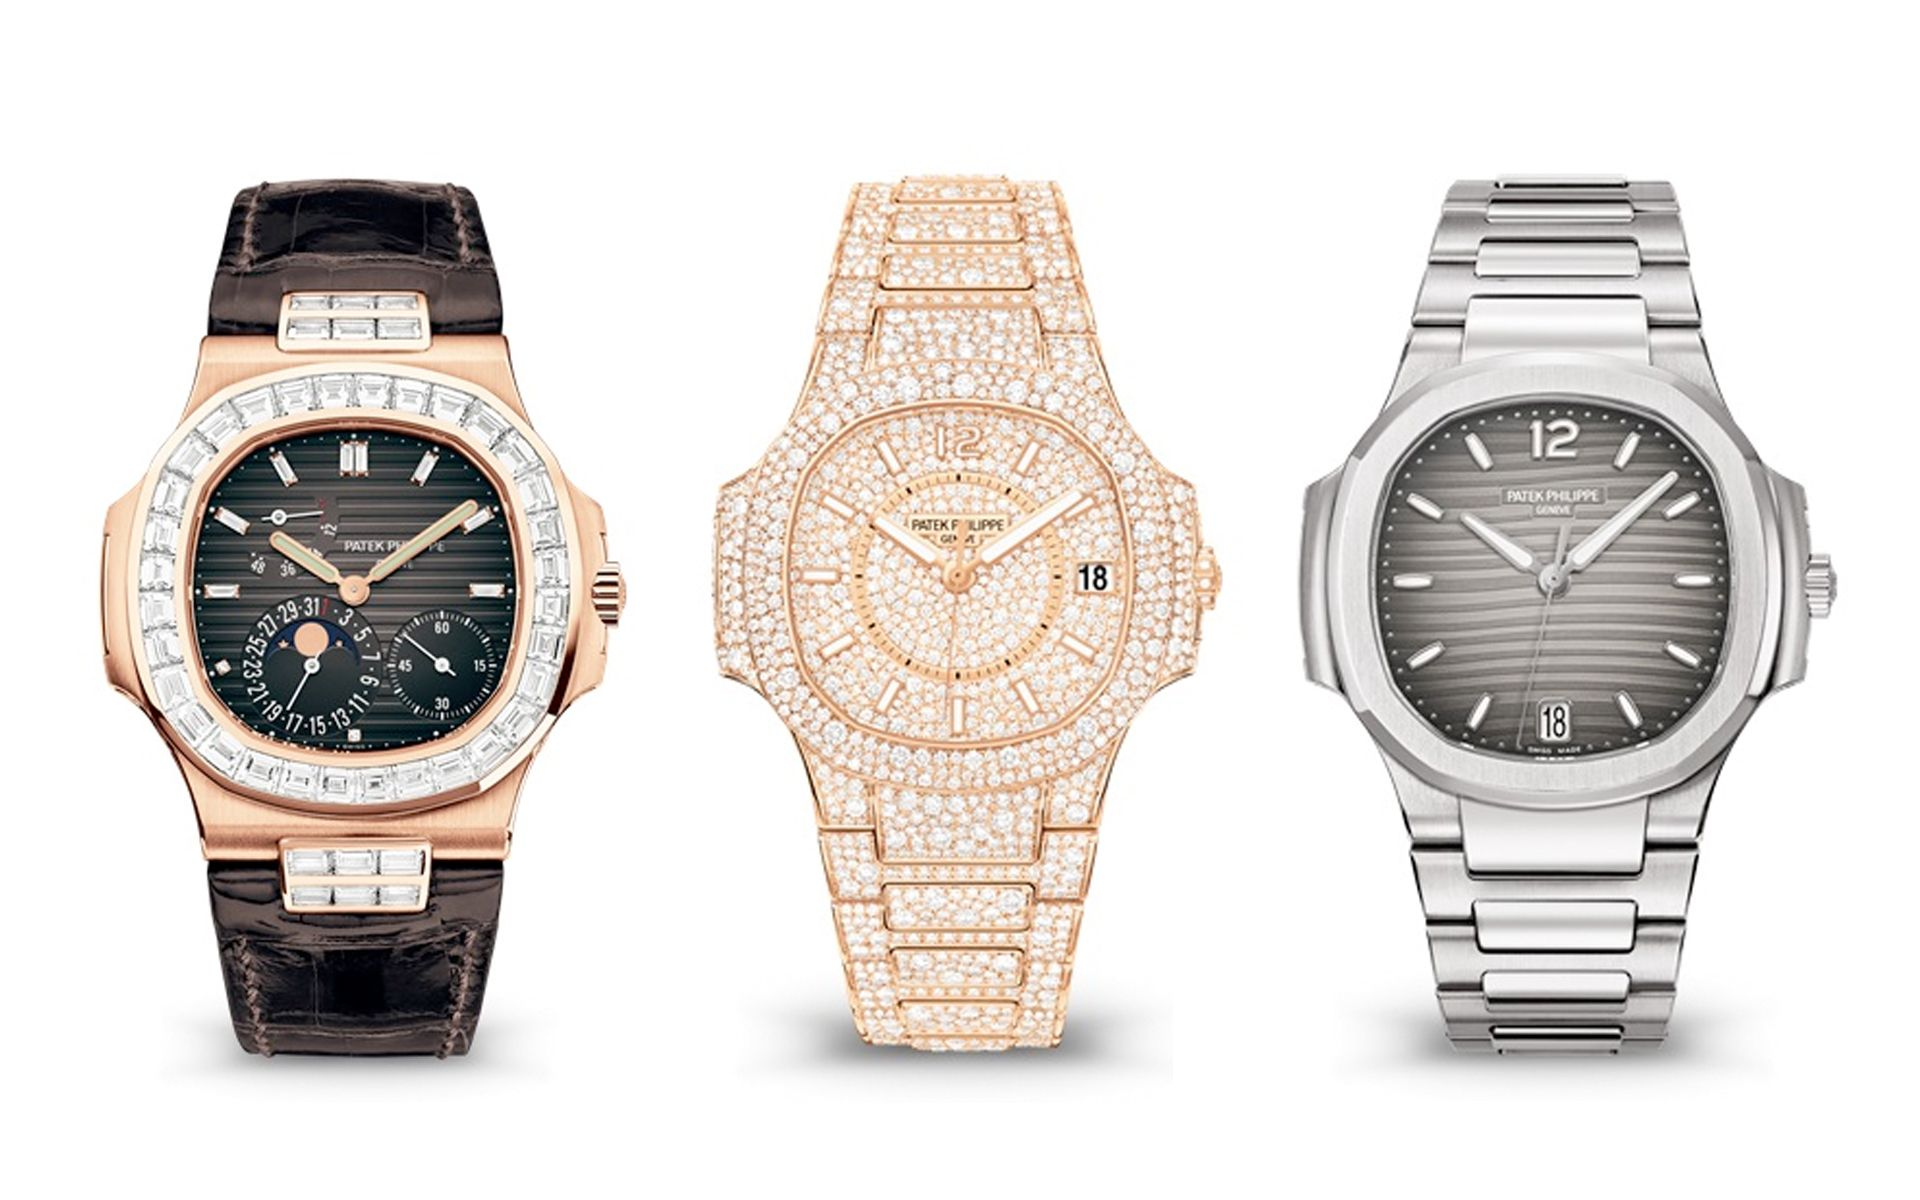 The 5724R-001 in Rose Gold, 7021/1R-001 in Rose Gold, and 7118/1A-011 in Stainless Steel.